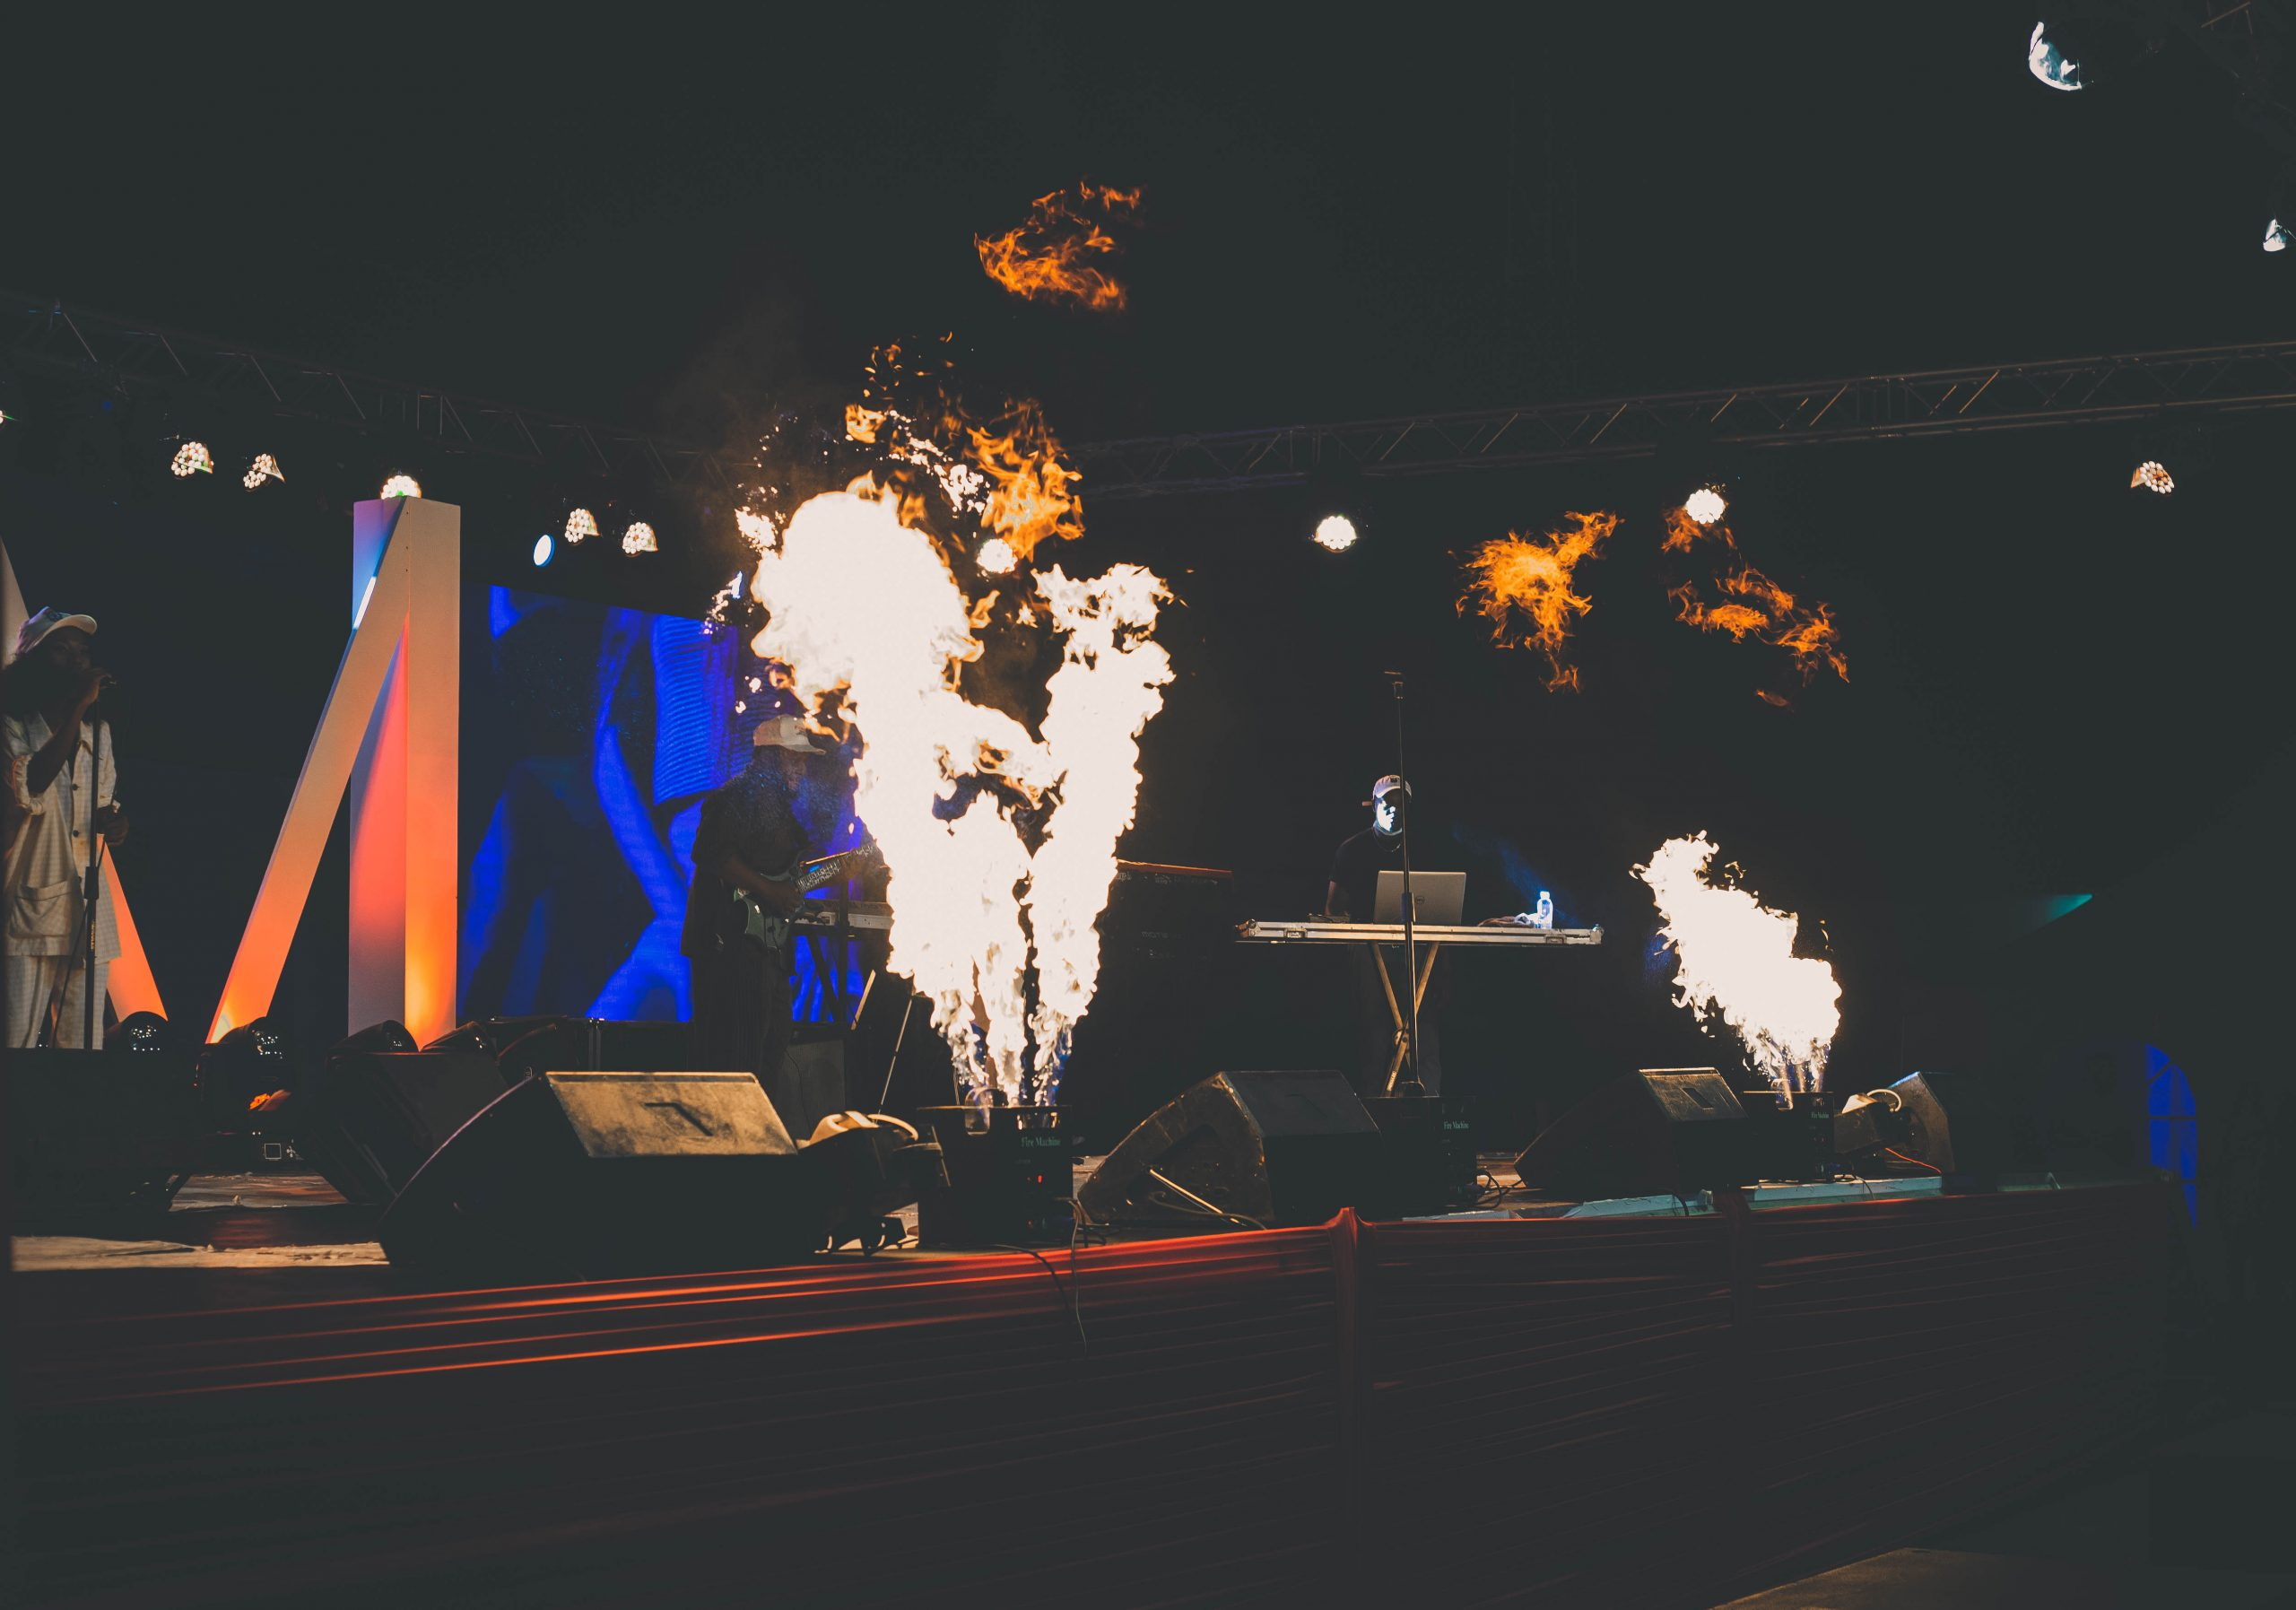 Gigkits acquire new state-of-the-art pyro equipment